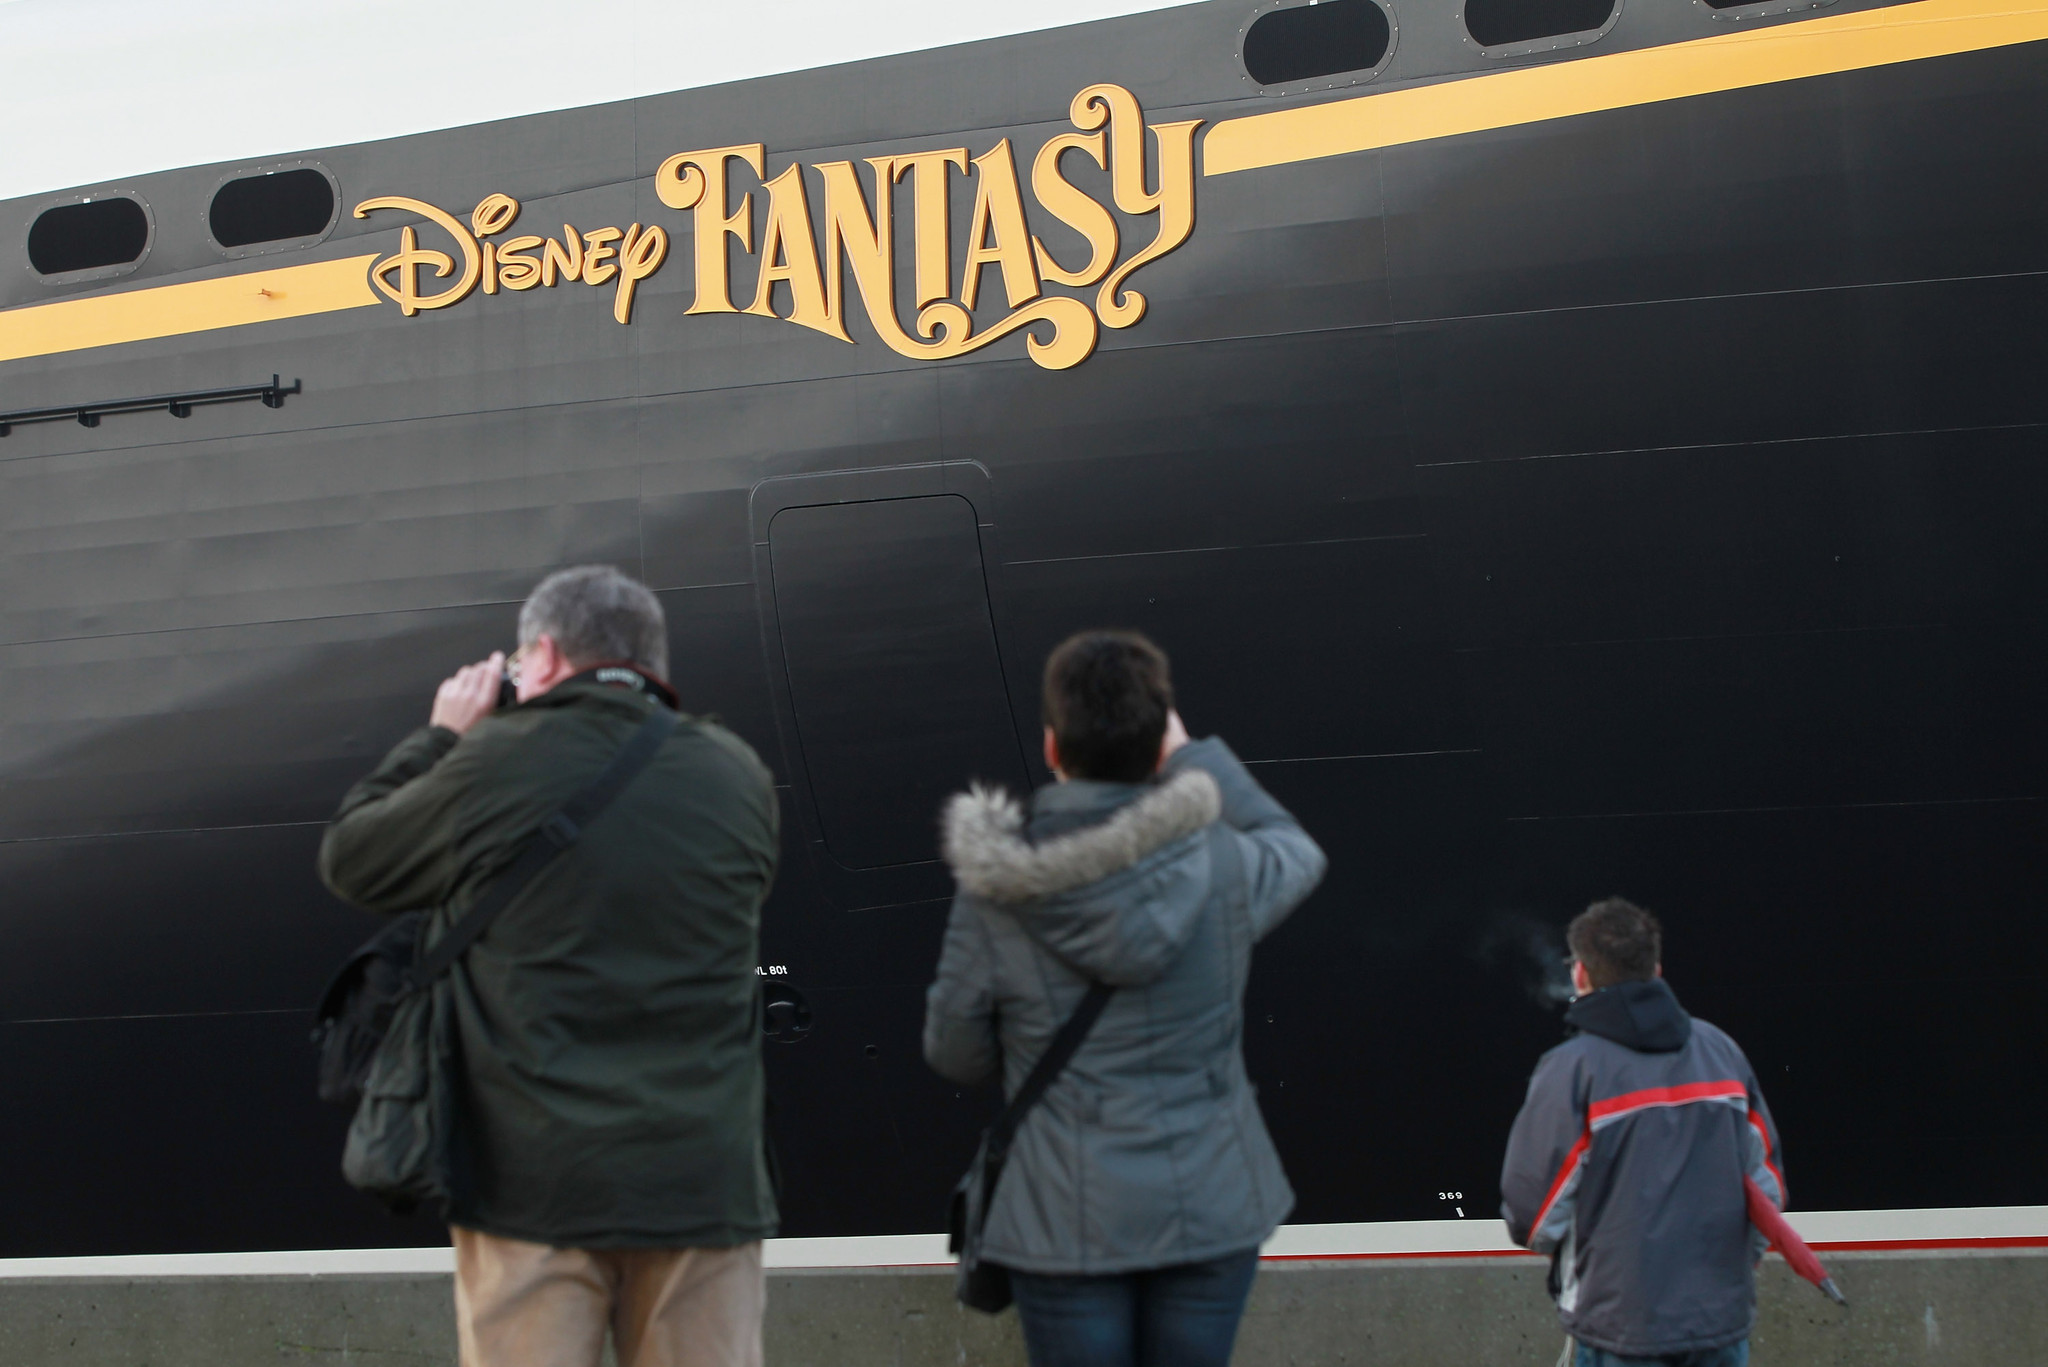 Florida Cruise Guide: Disney Fantasy pictures - Disney Fantasy leaves shipyard